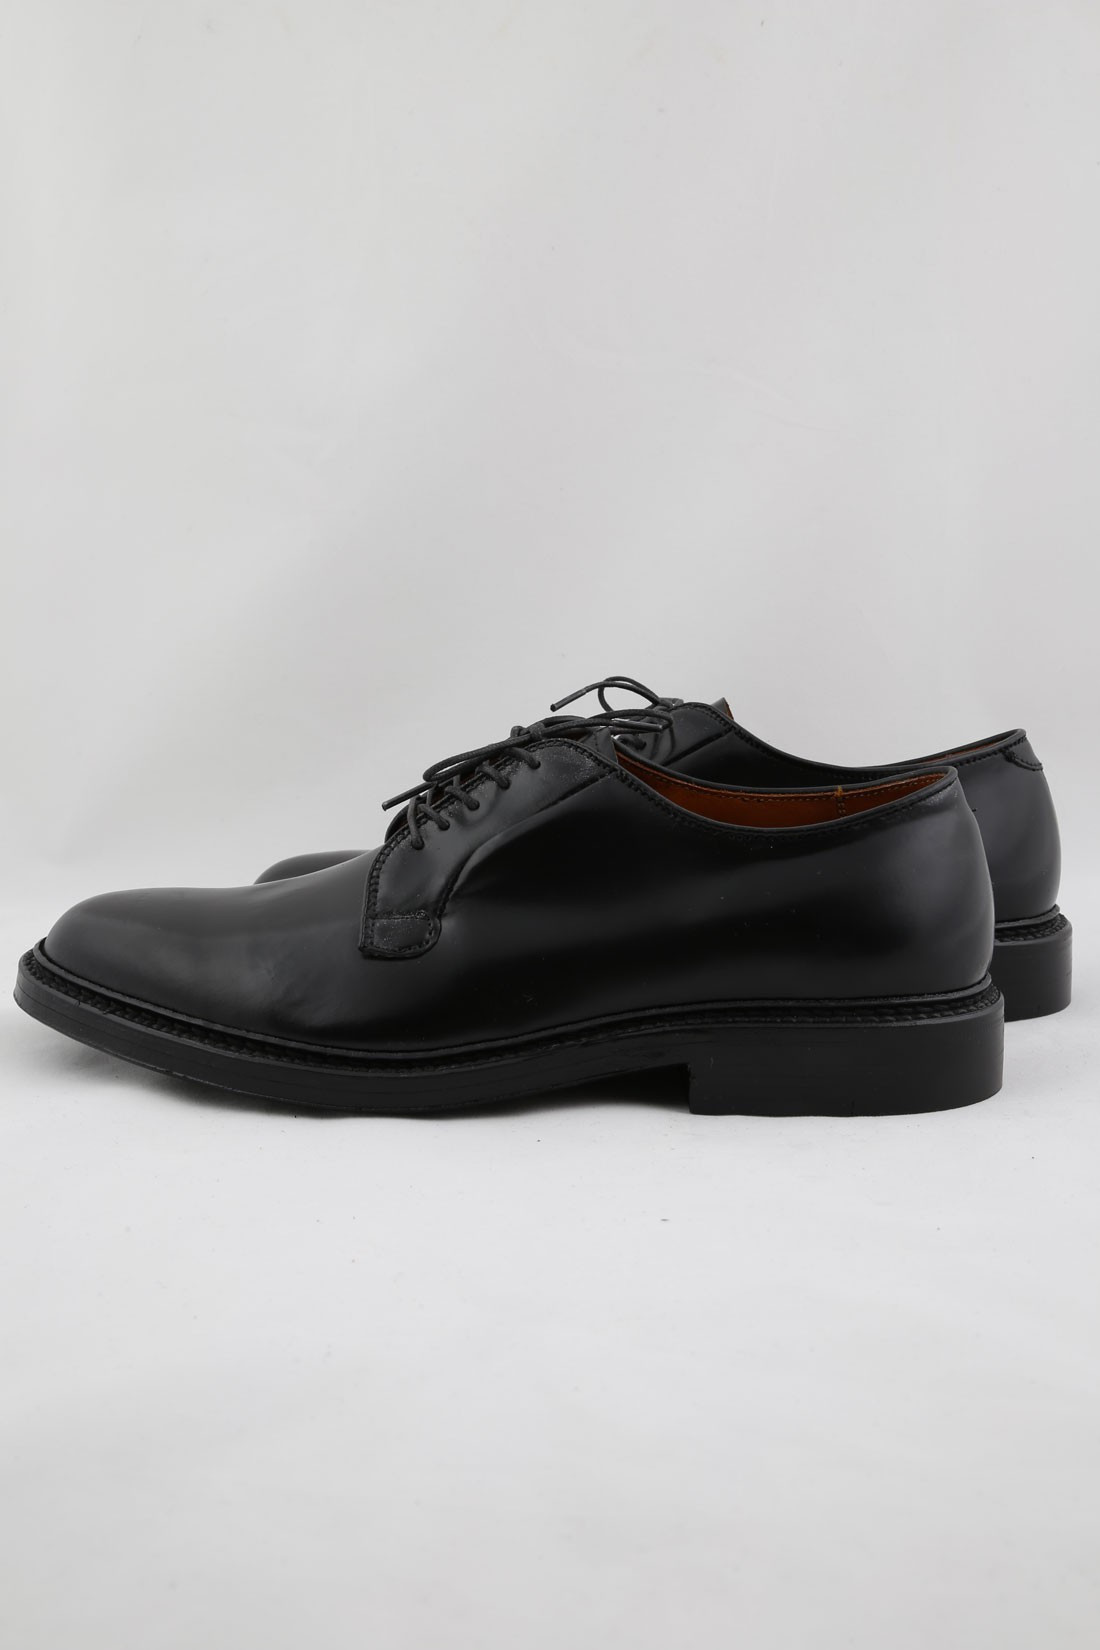 9901 plaintoe blucher cordovan Black